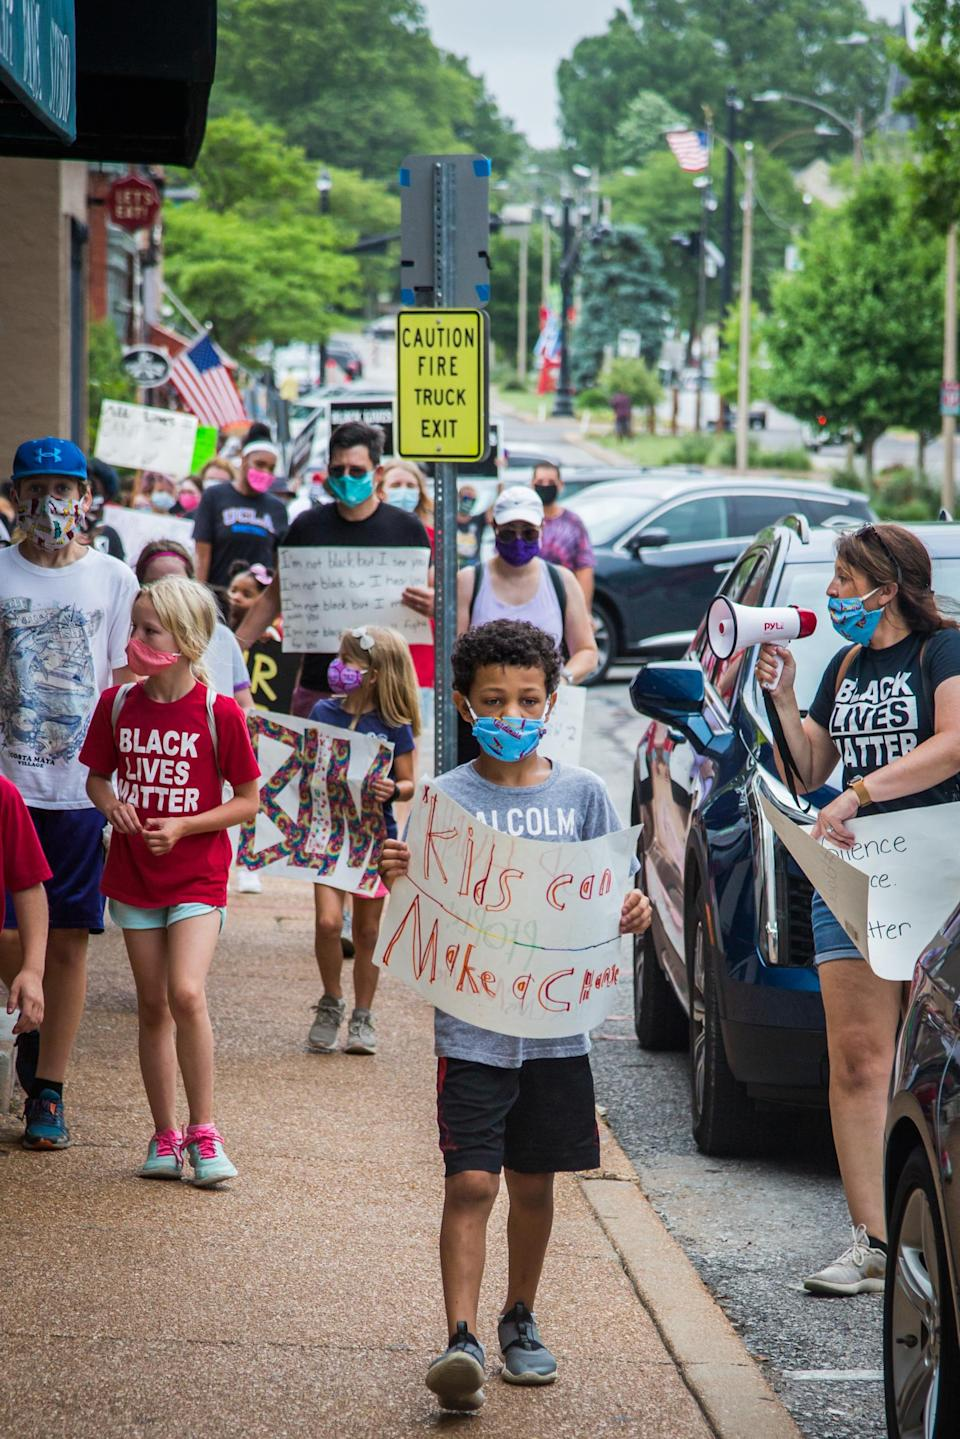 Nolan, seen with fellow participants walked the streets of Kirkwood, Missouri with Black Lives Matter signs. (Photo: Bailey Elizabeth Rogers)